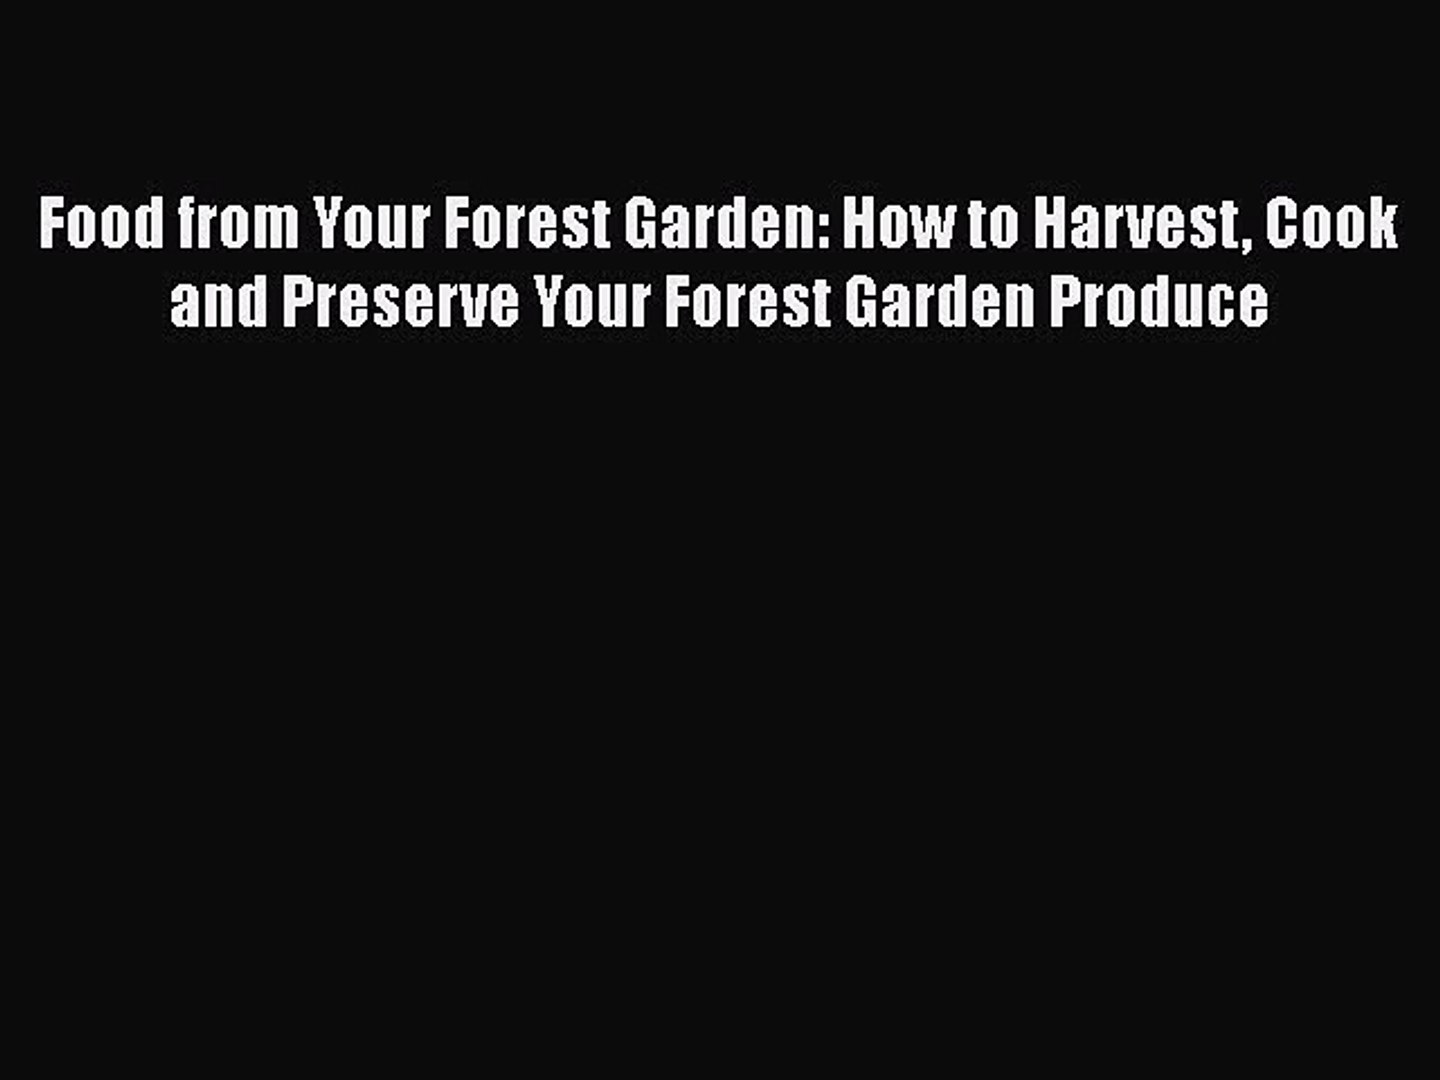 [Read PDF] Food from Your Forest Garden: How to Harvest Cook and Preserve Your Forest Garden